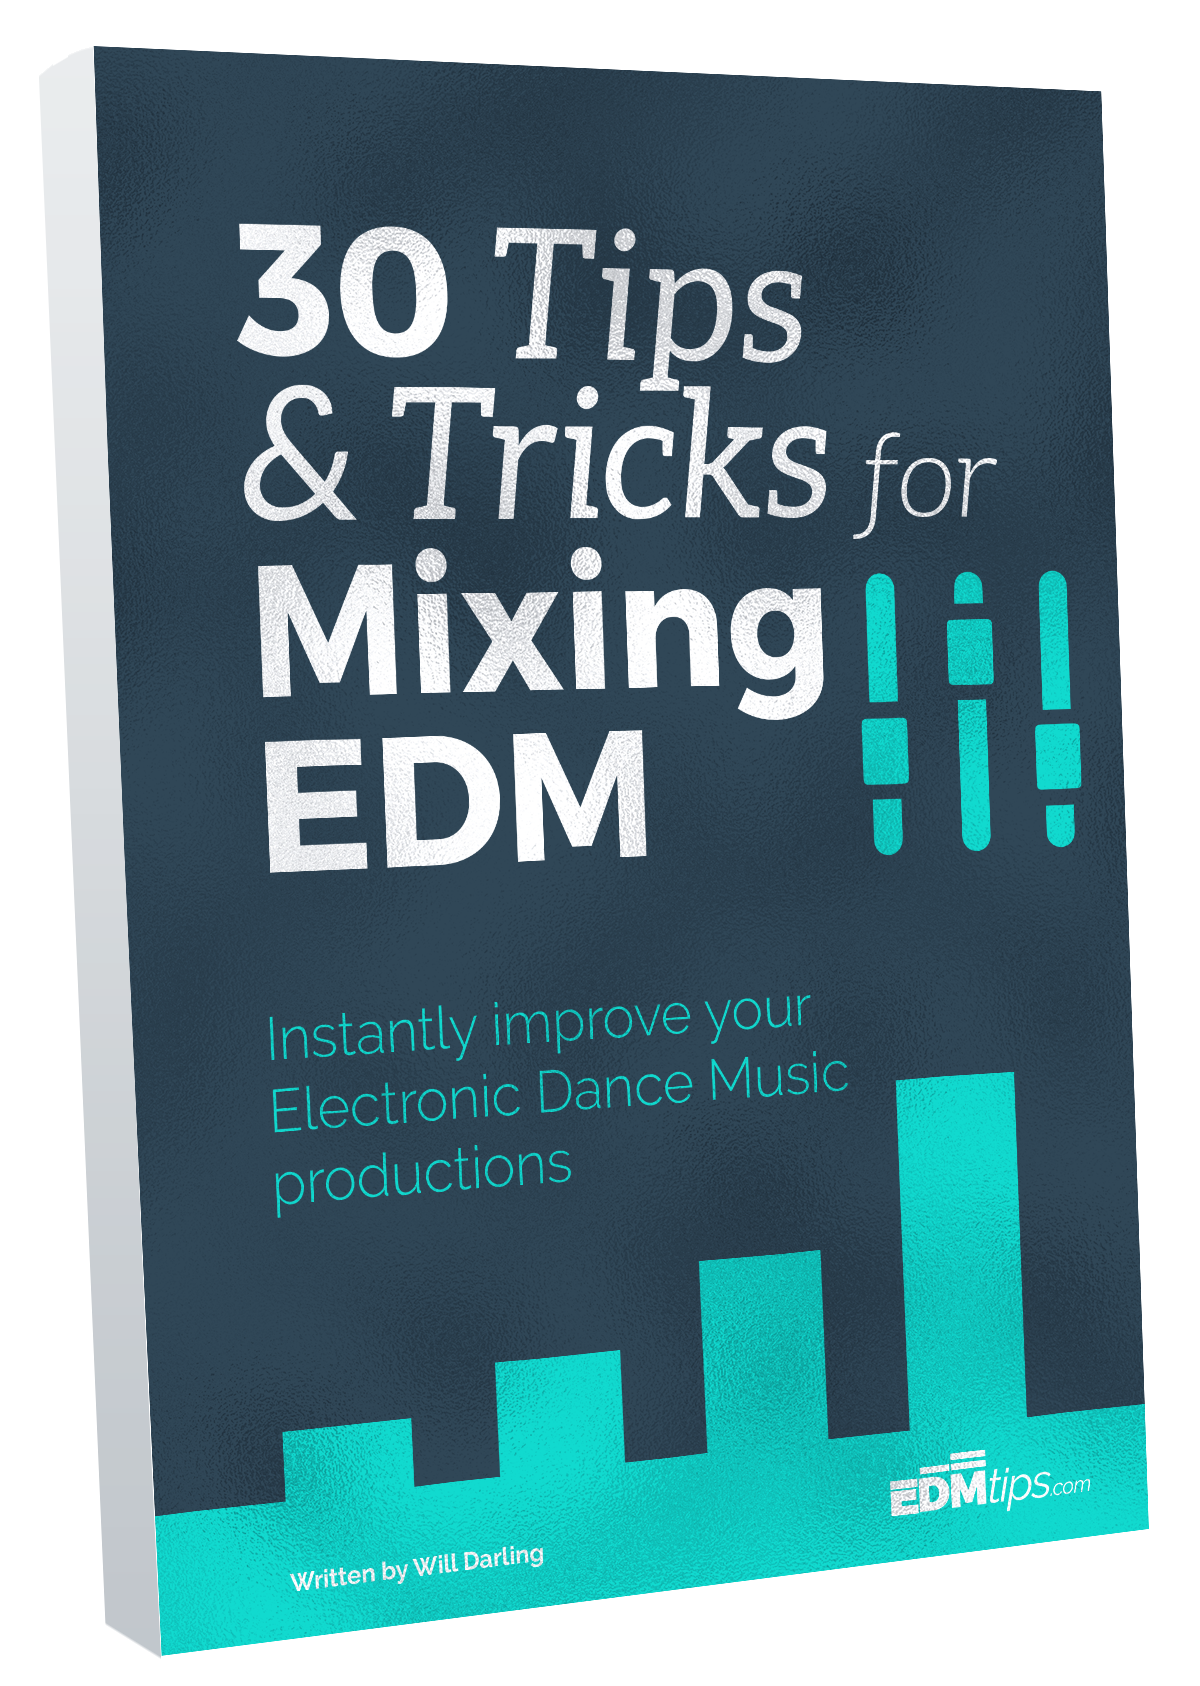 Gain Staging - Better Mixes In 5 Minutes | EDMtips com